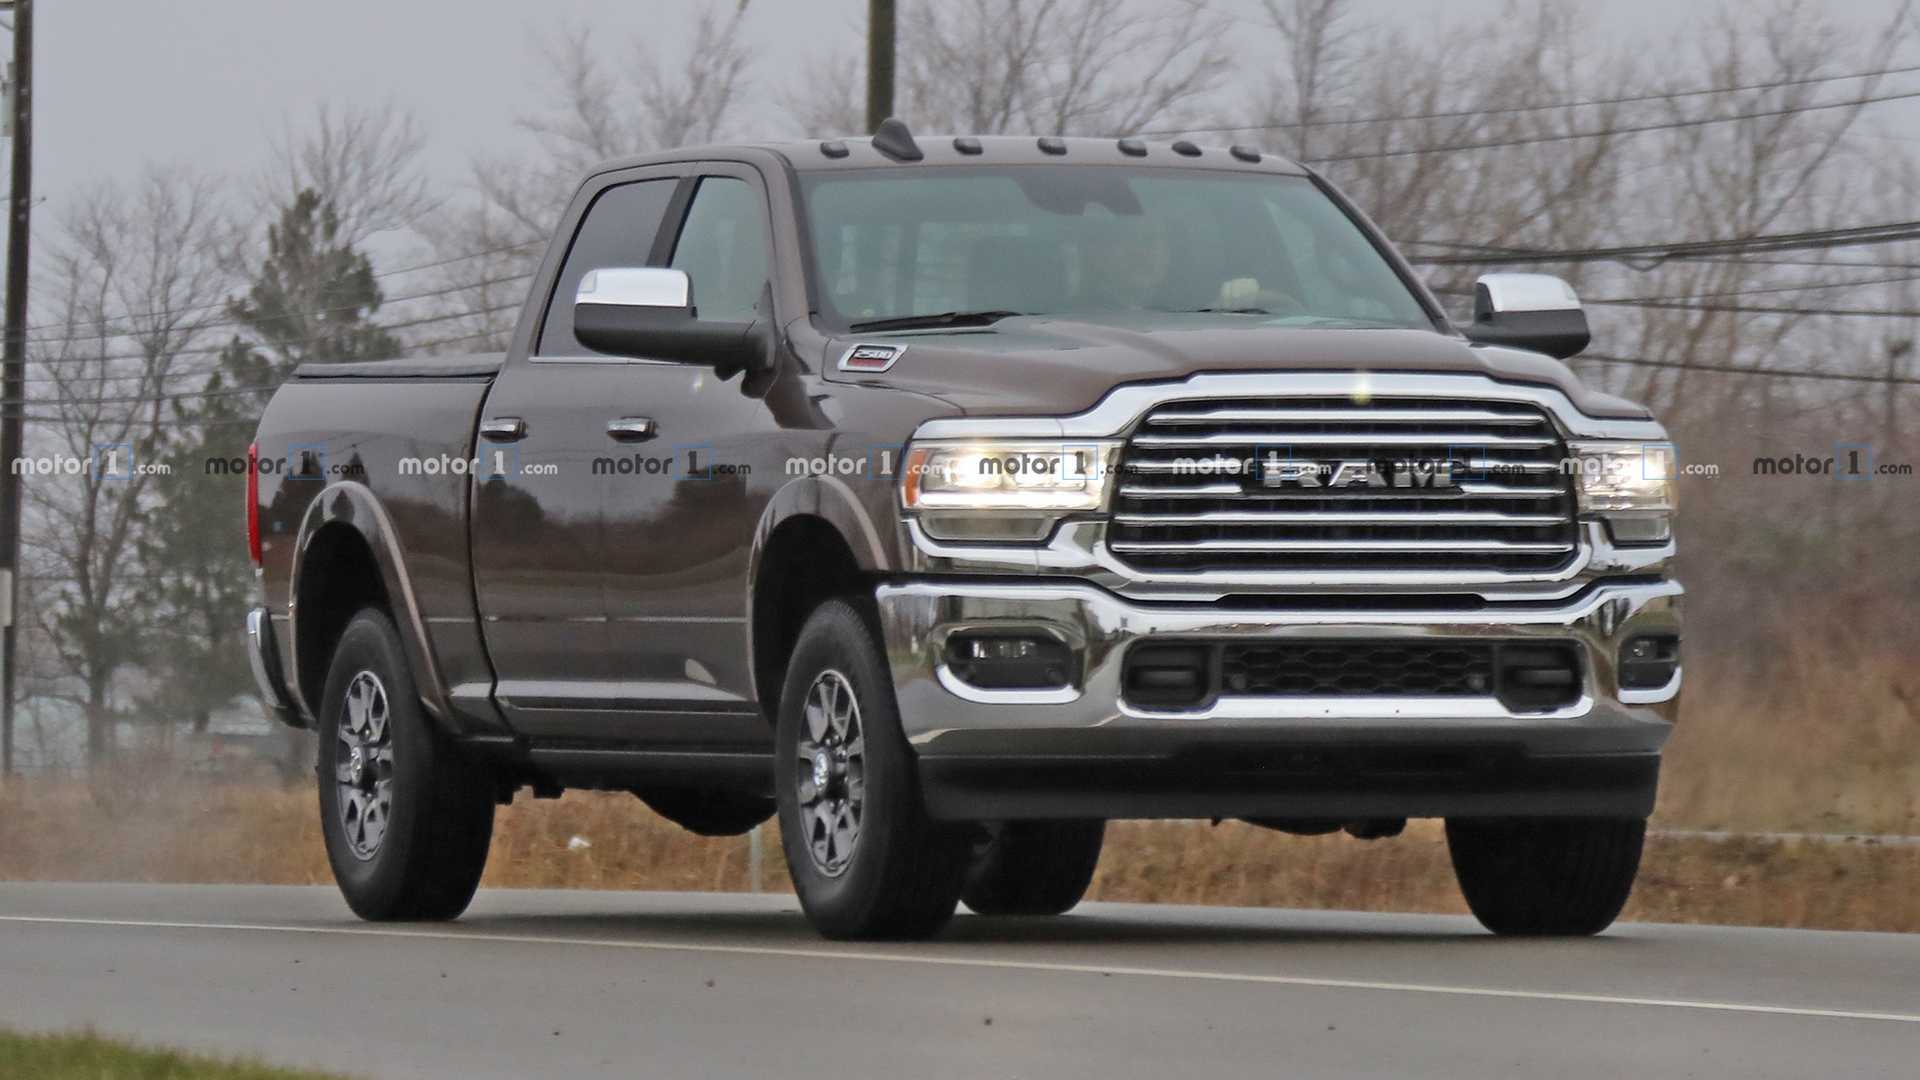 48 New 2020 Ram 2500 Diesel Review And Release Date